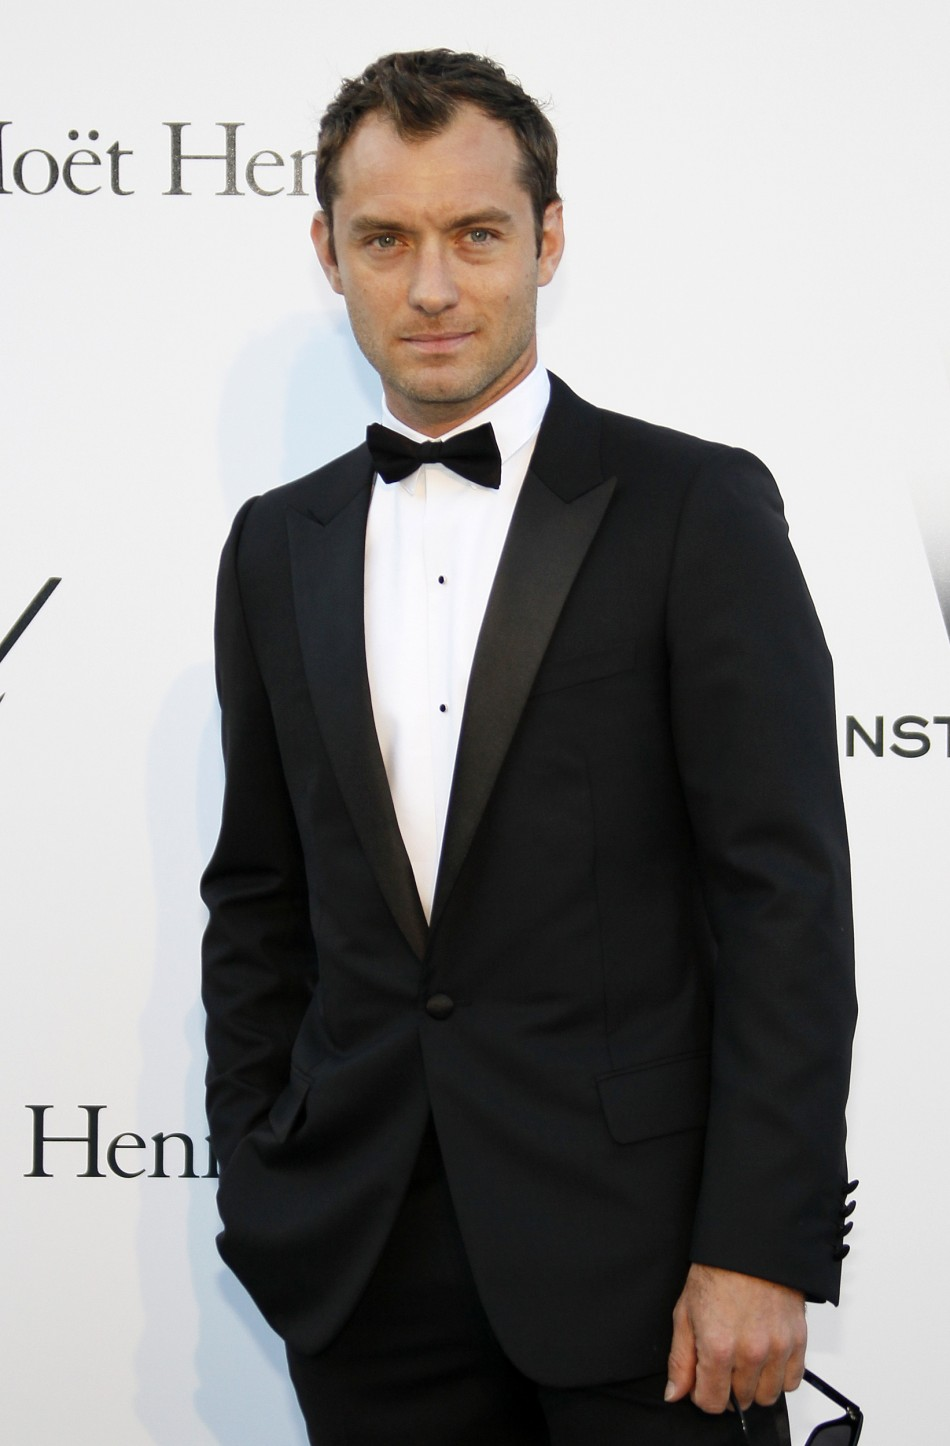 Actor Law arrives for amfAR's Cinema Against AIDS 2011 event in Antibes